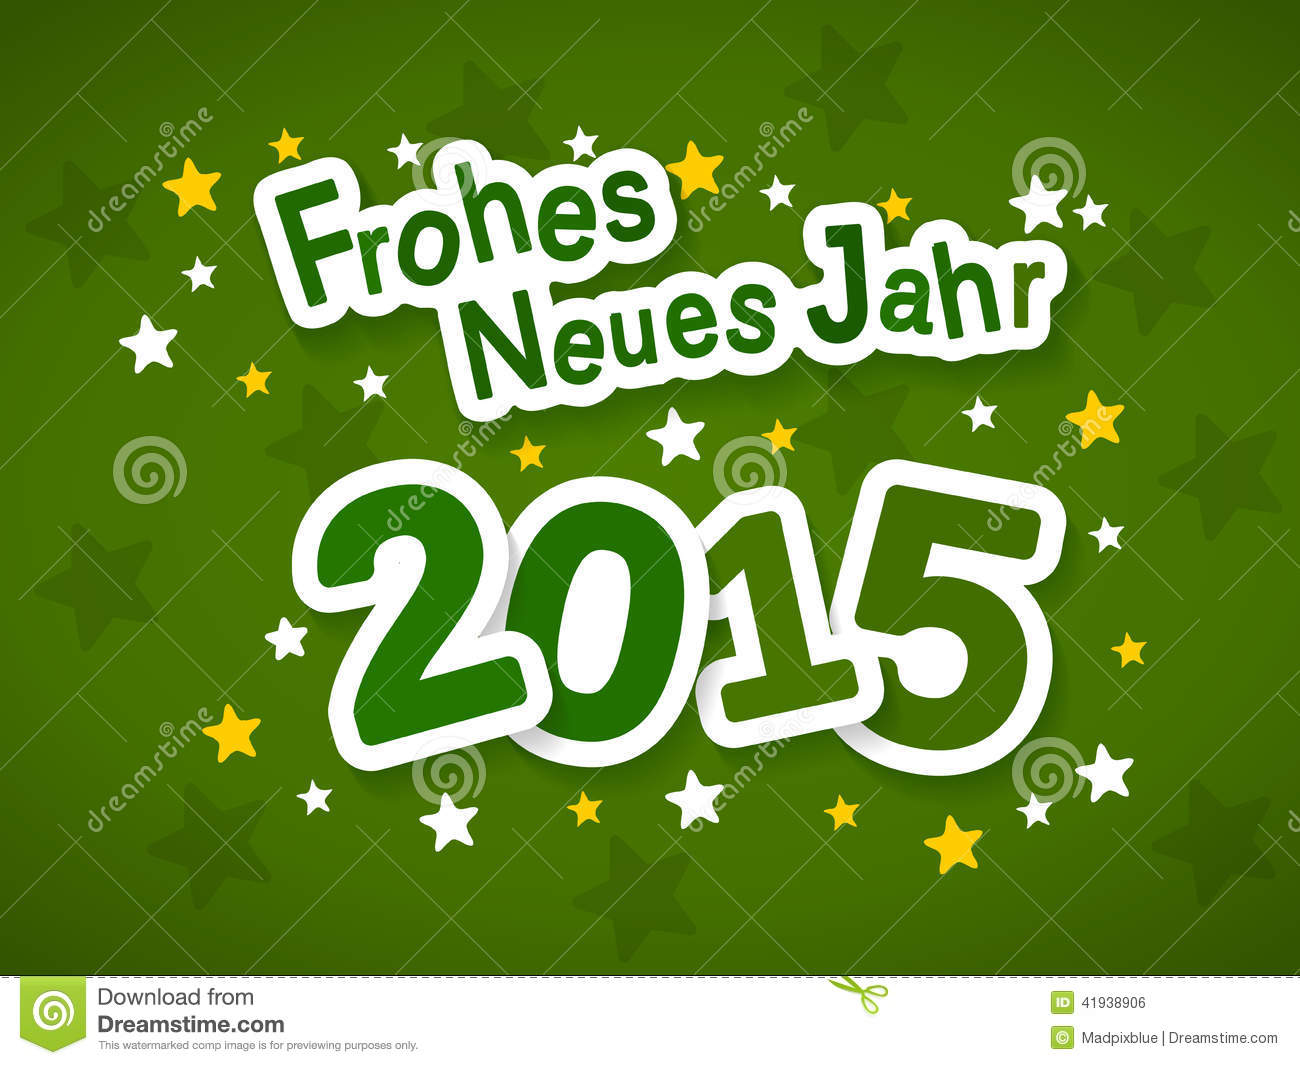 Frohes Neues Jahr 2015 stock vector. Illustration of celebrate ...